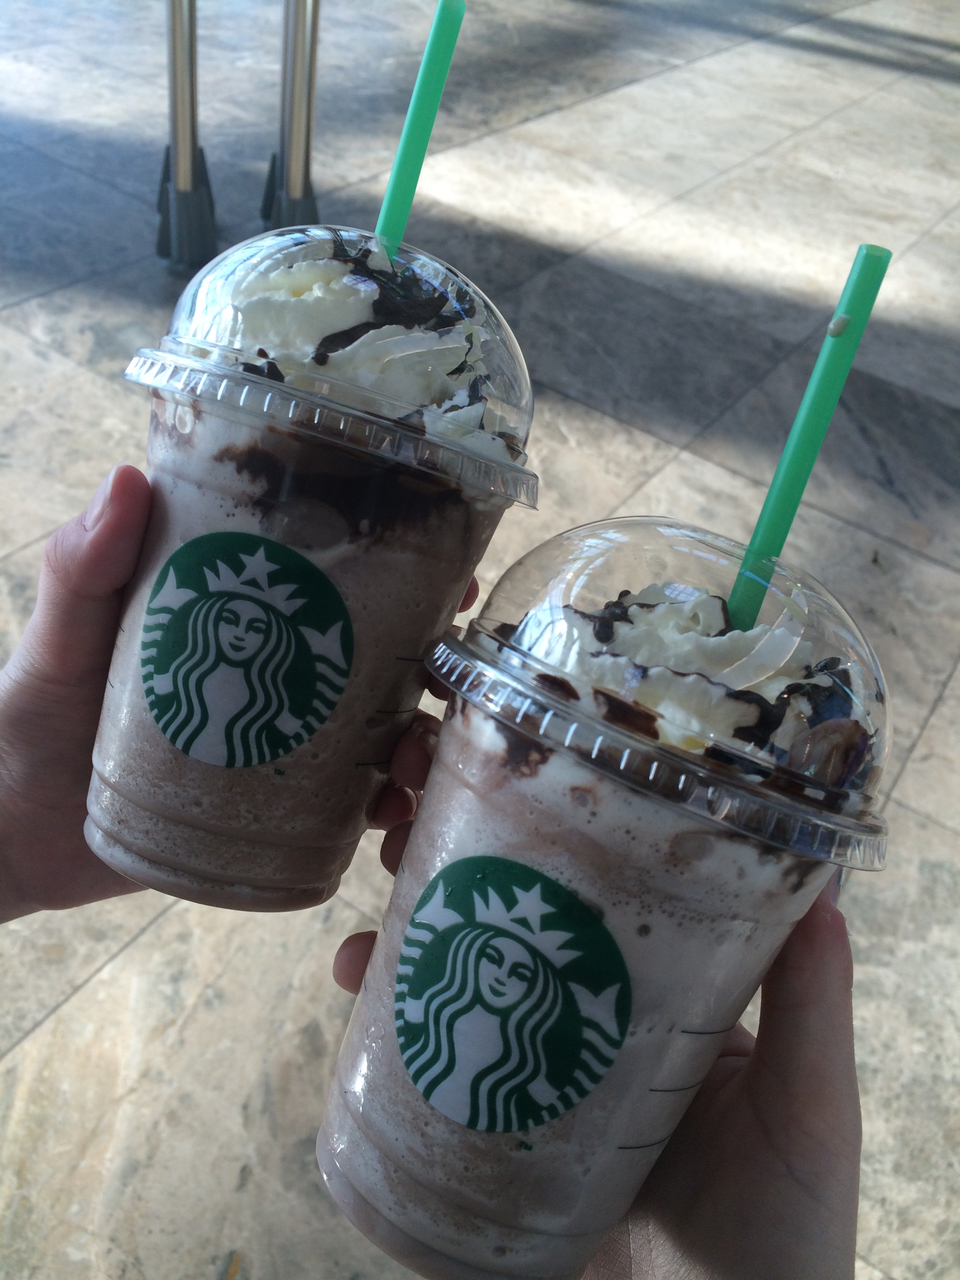 starbucks and frappe image